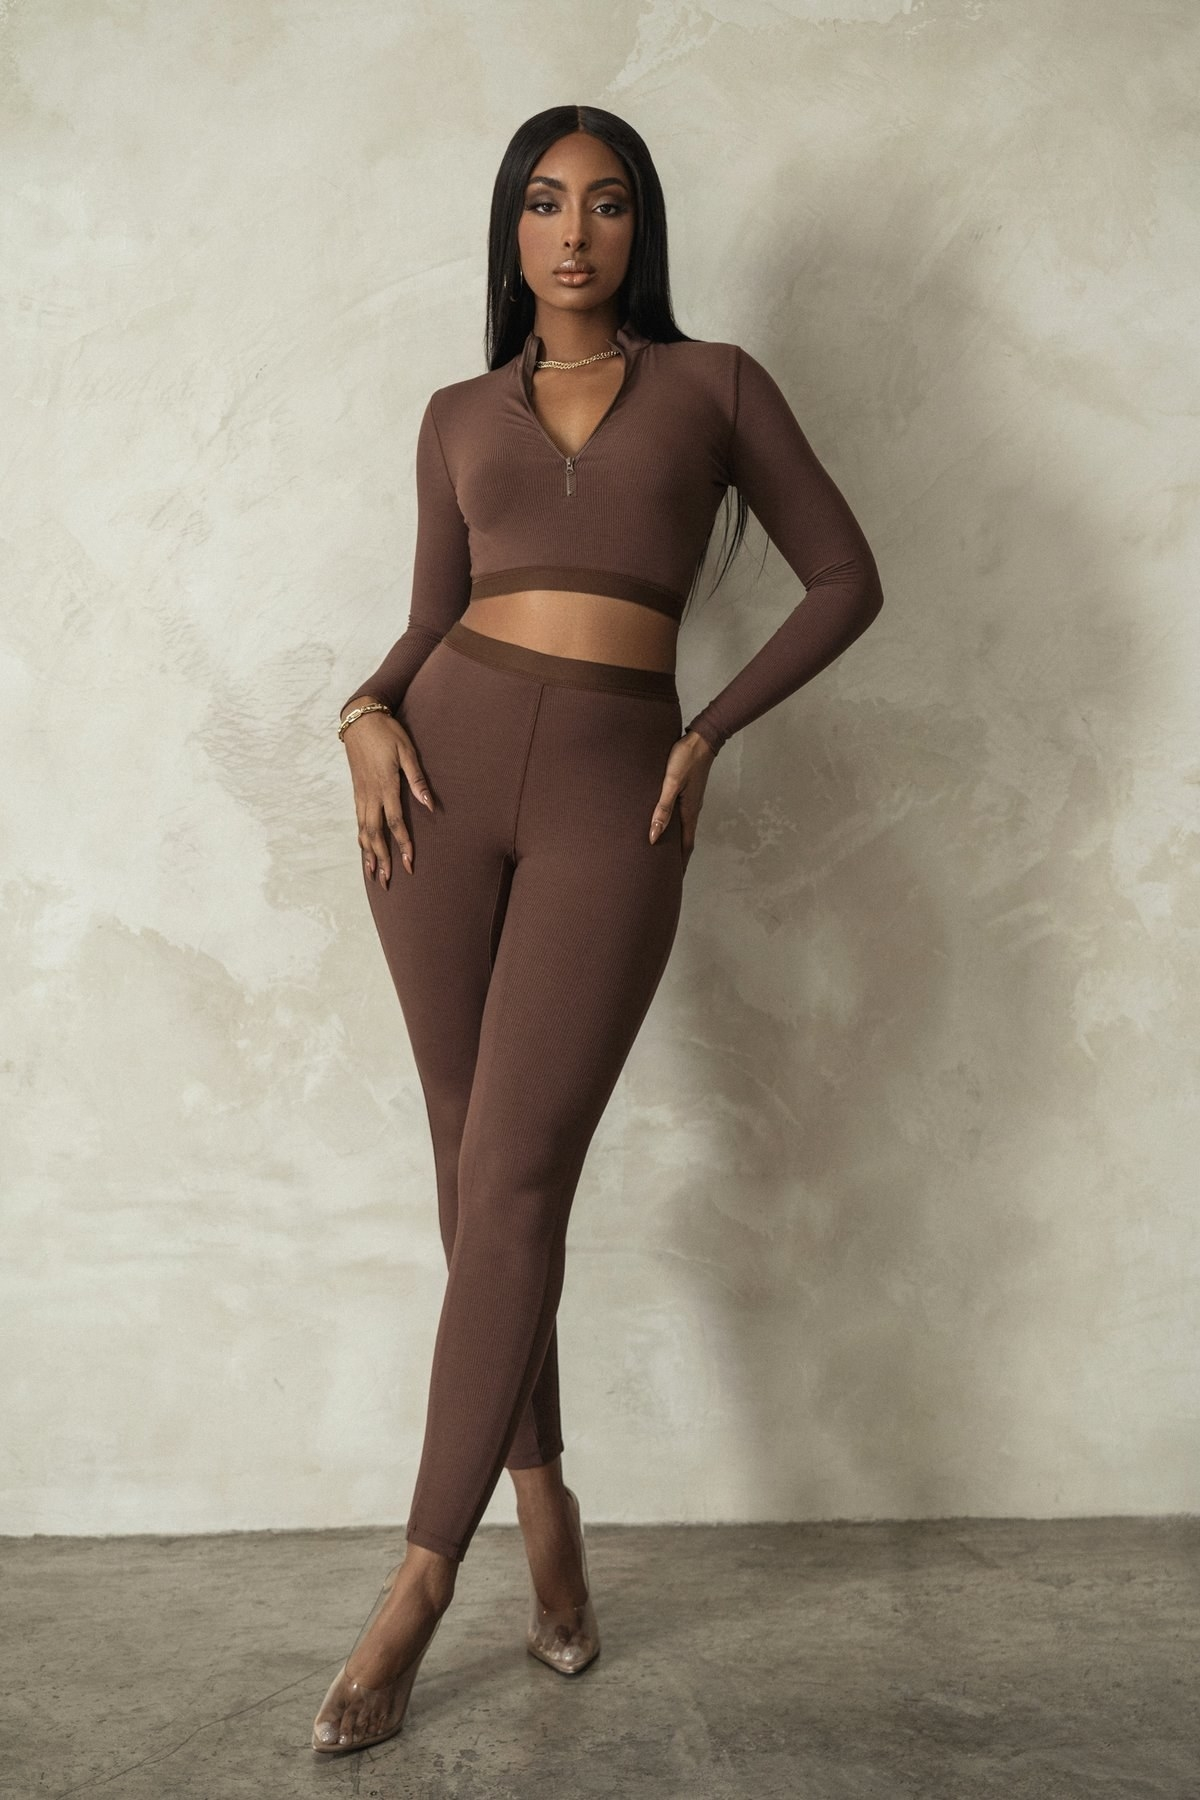 model wearing the brown cropped top and high waisted leggings